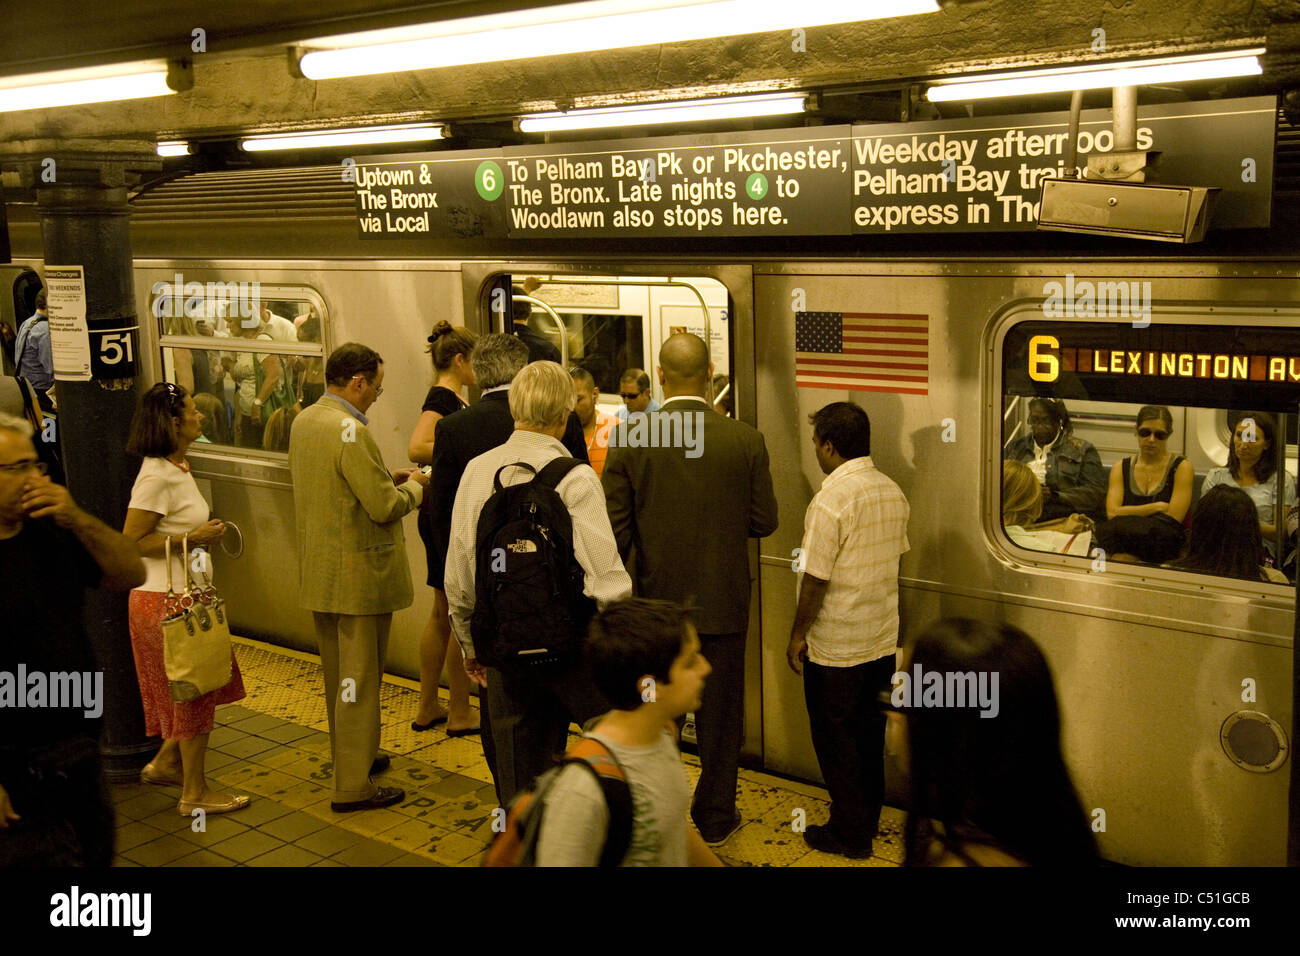 Lexington local 6 subway train in the station at E. 51st Street in Manhattan. - Stock Image